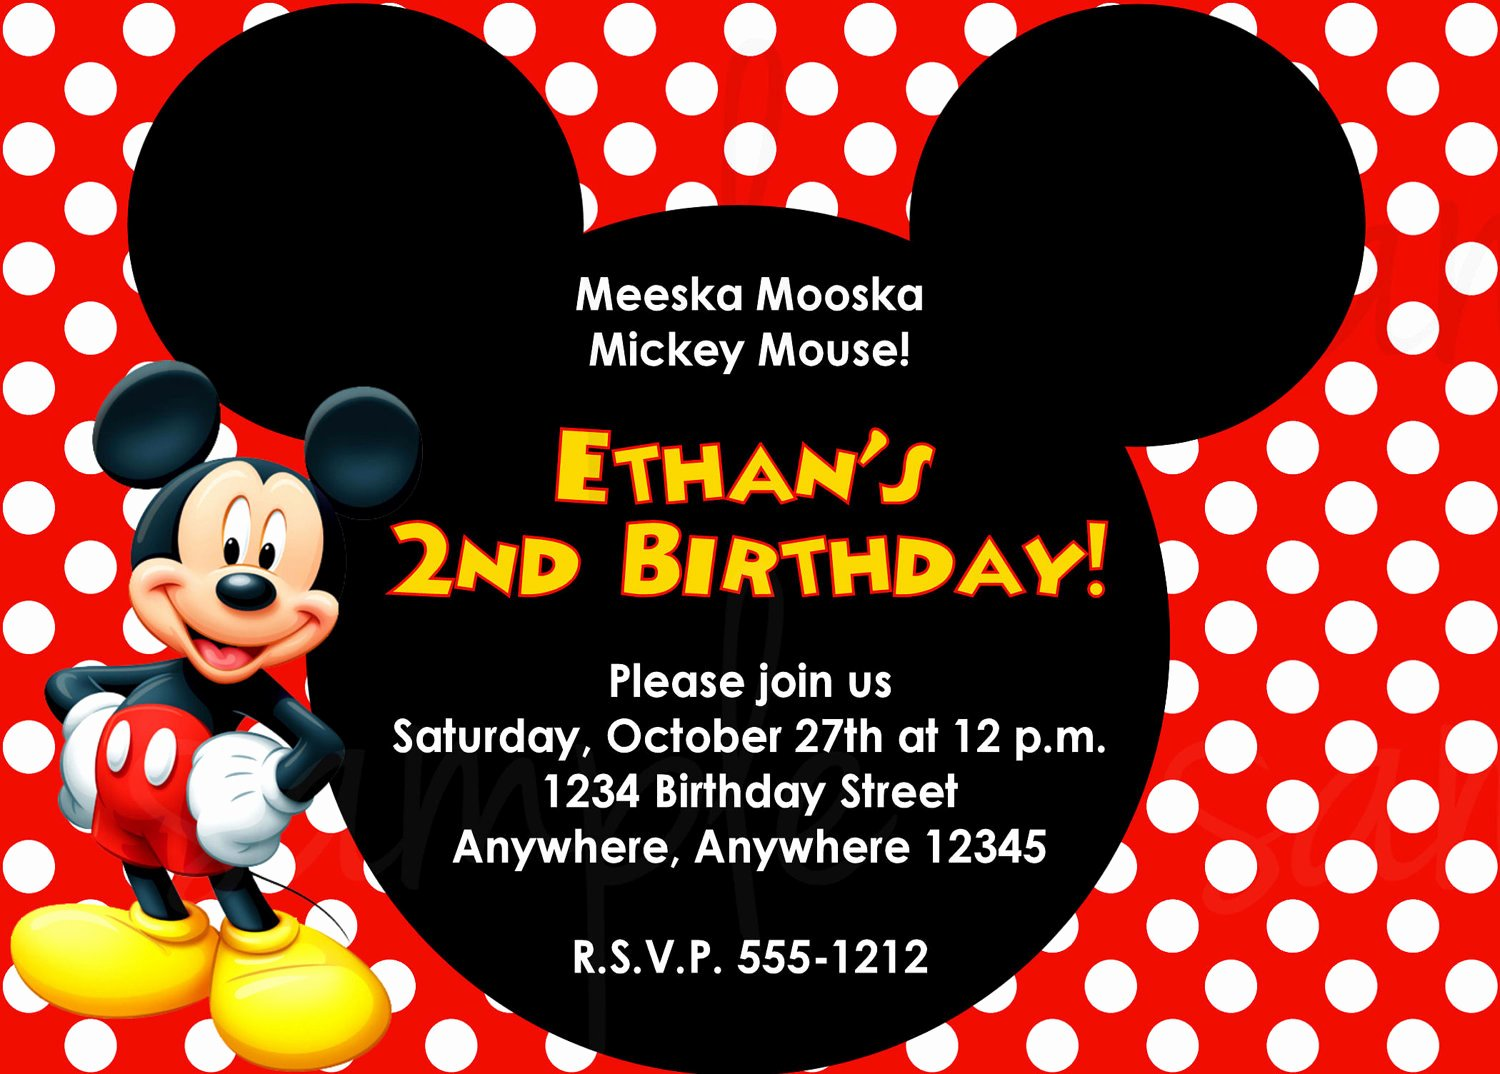 Mickey Mouse Birthday Invitations Lovely Mickey Mouse Birthday Invitation